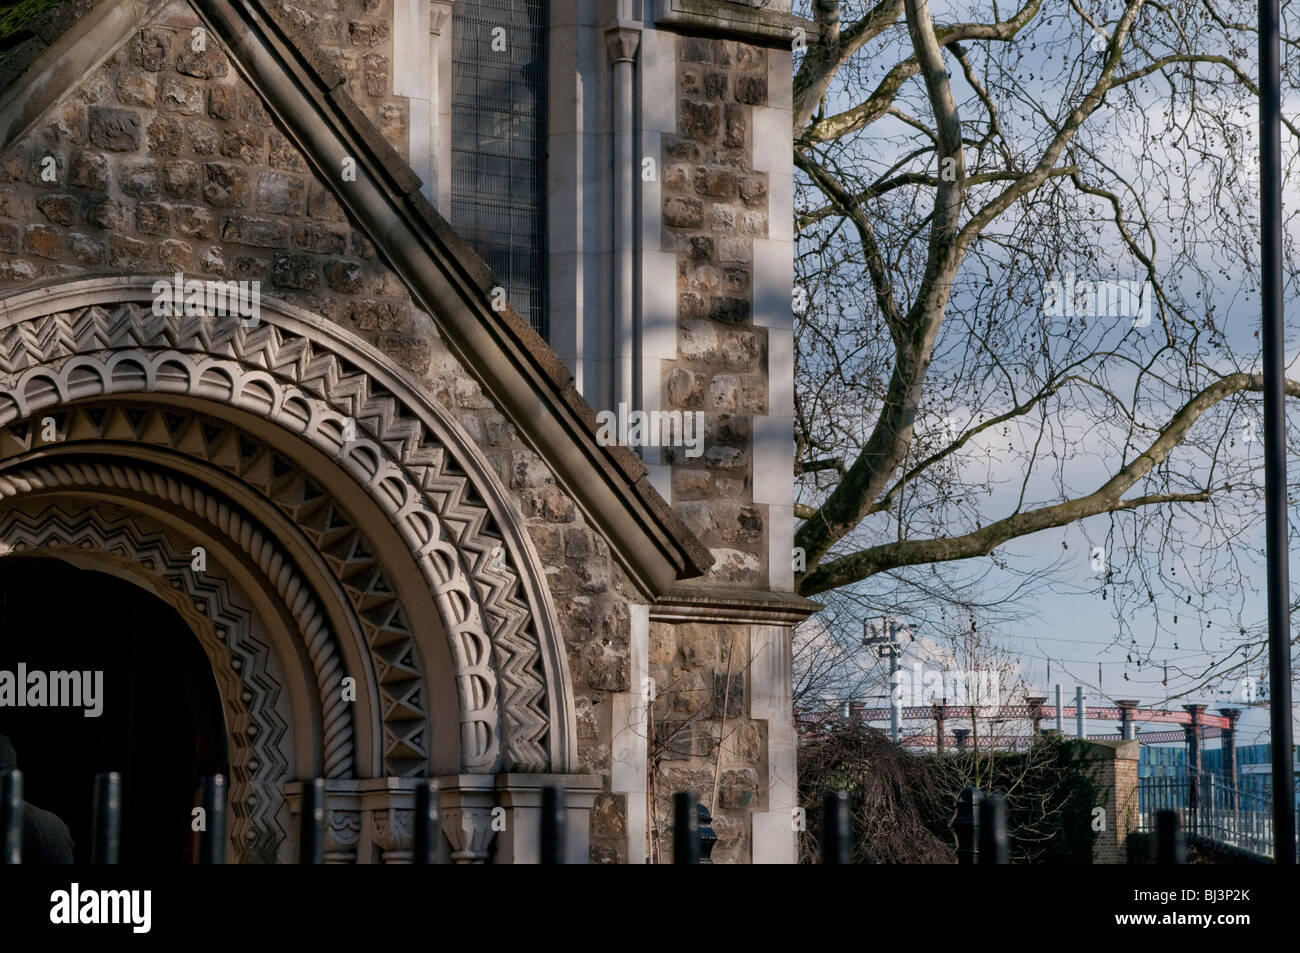 St Pancras Old Church and Kings Cross Gas holder in distance, London, UK - Stock Image